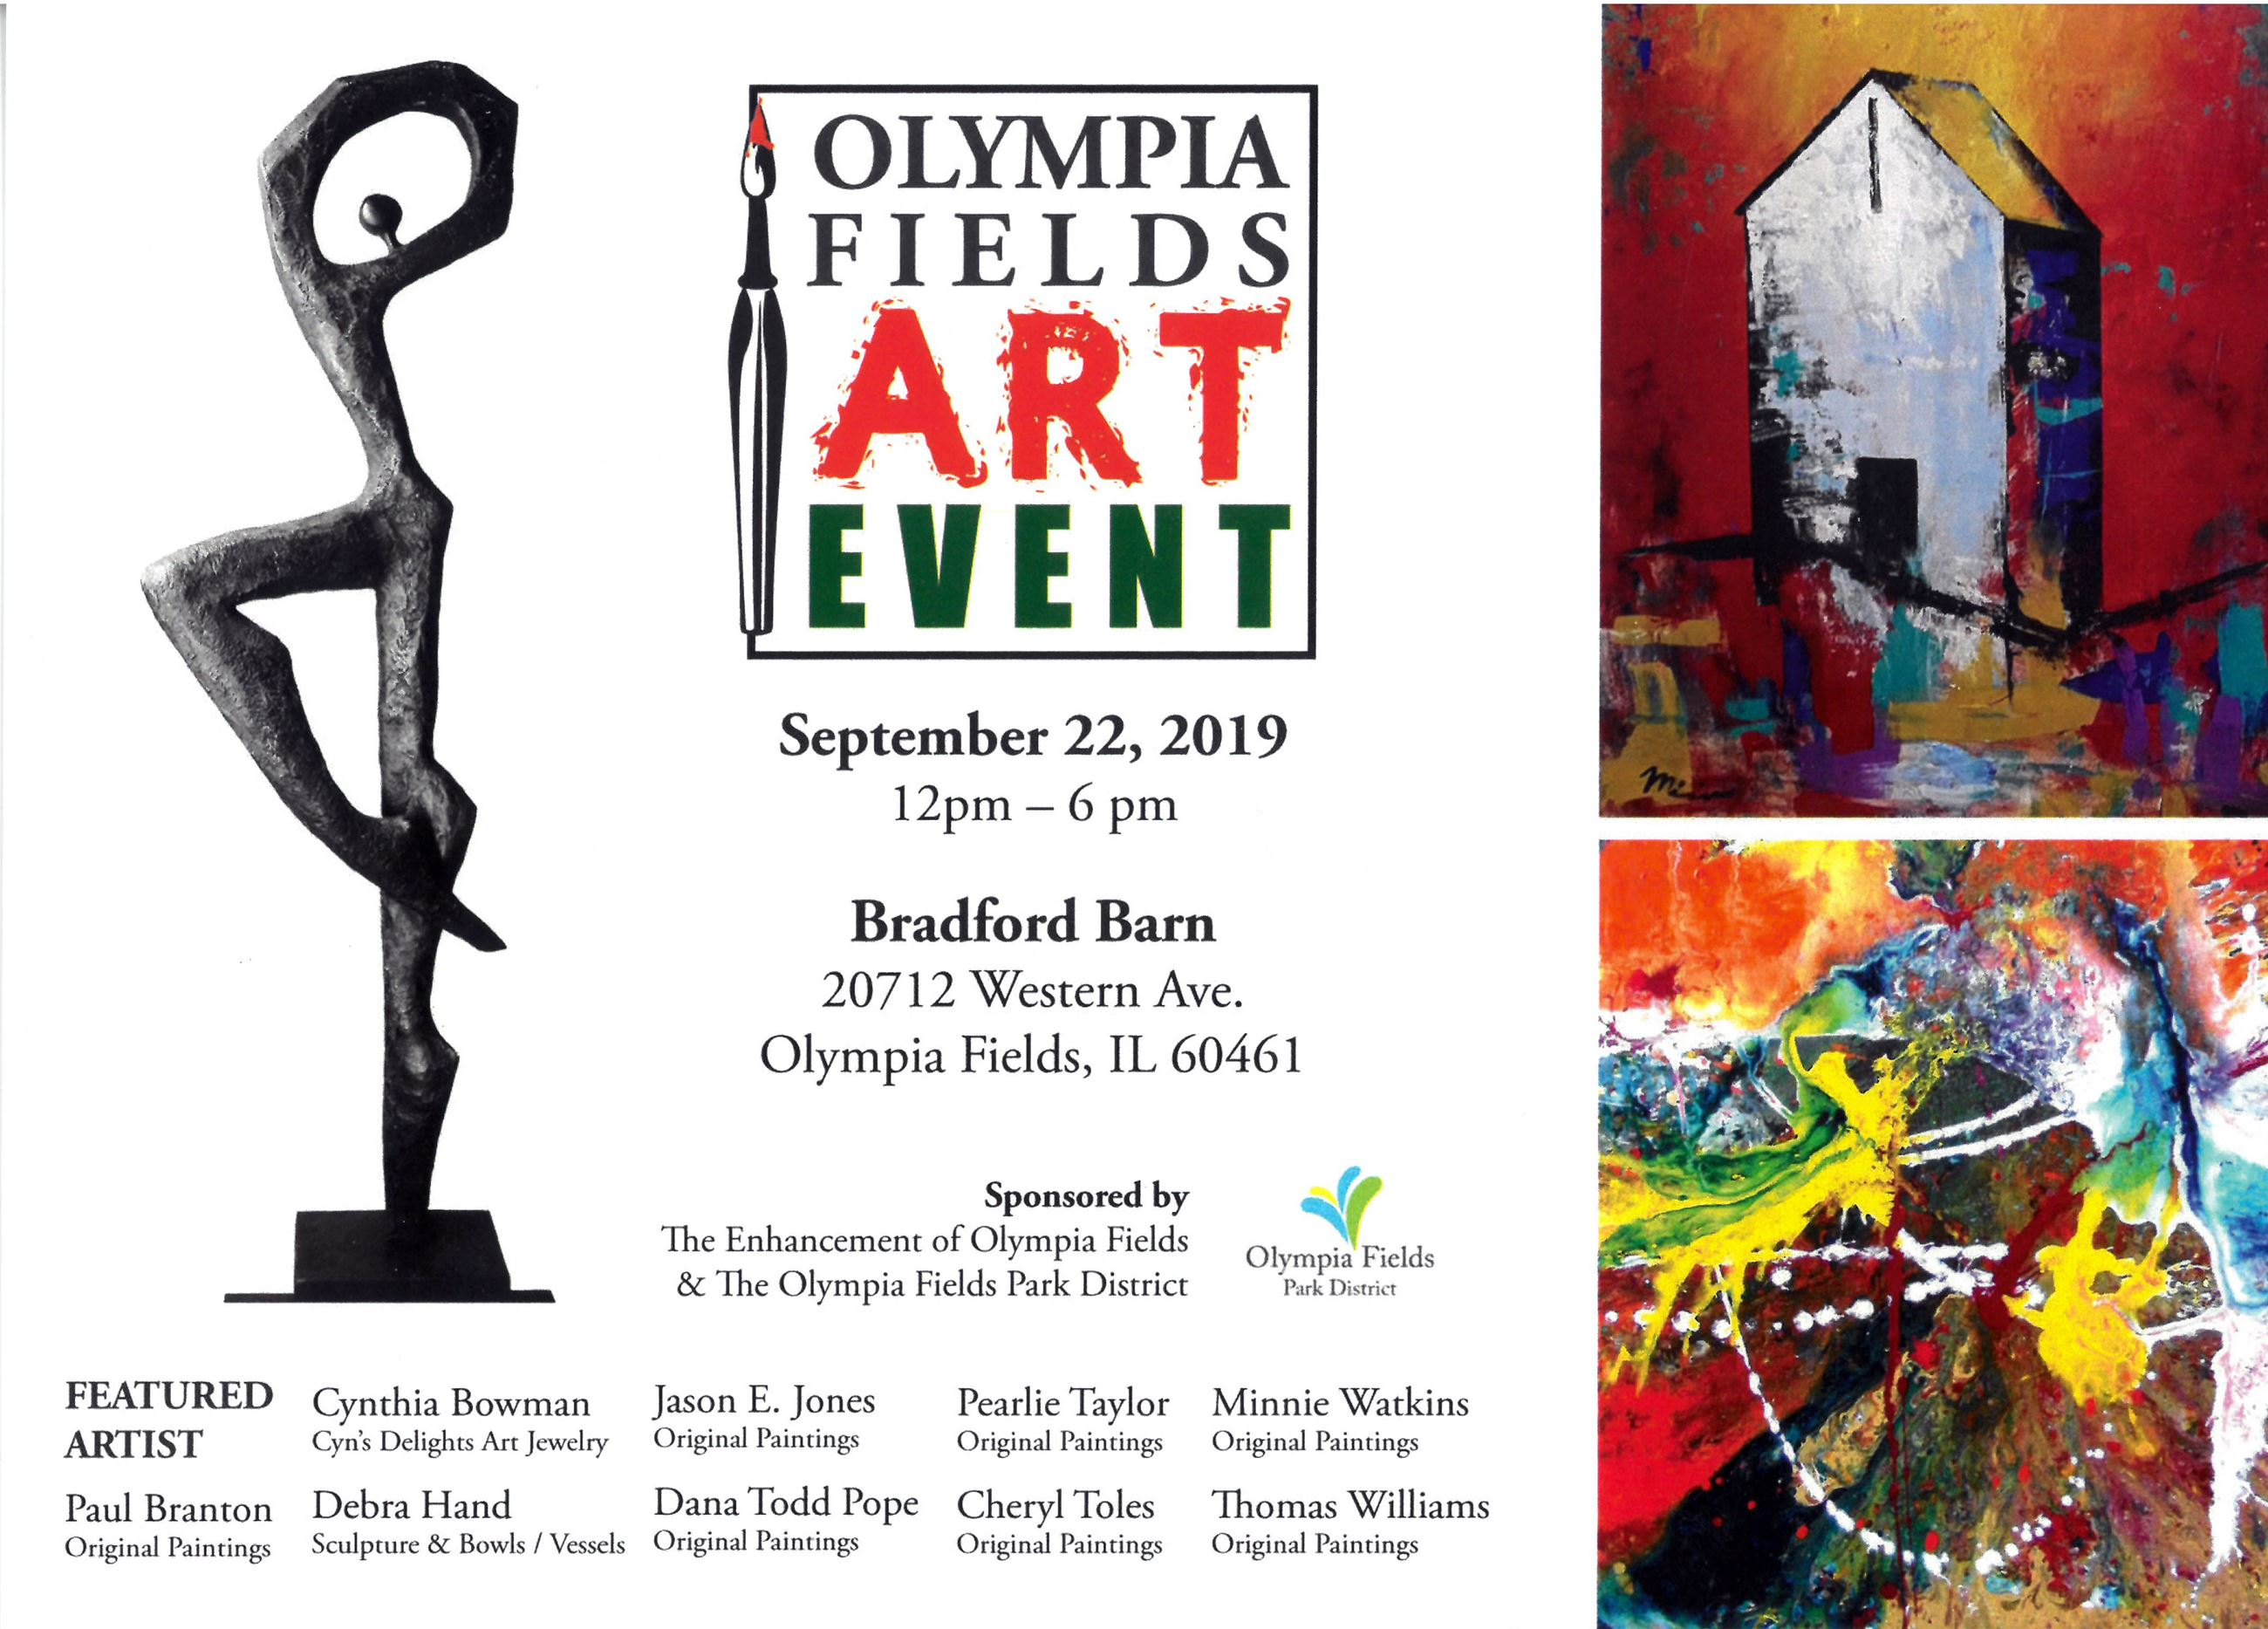 Olympia Fields Art Event